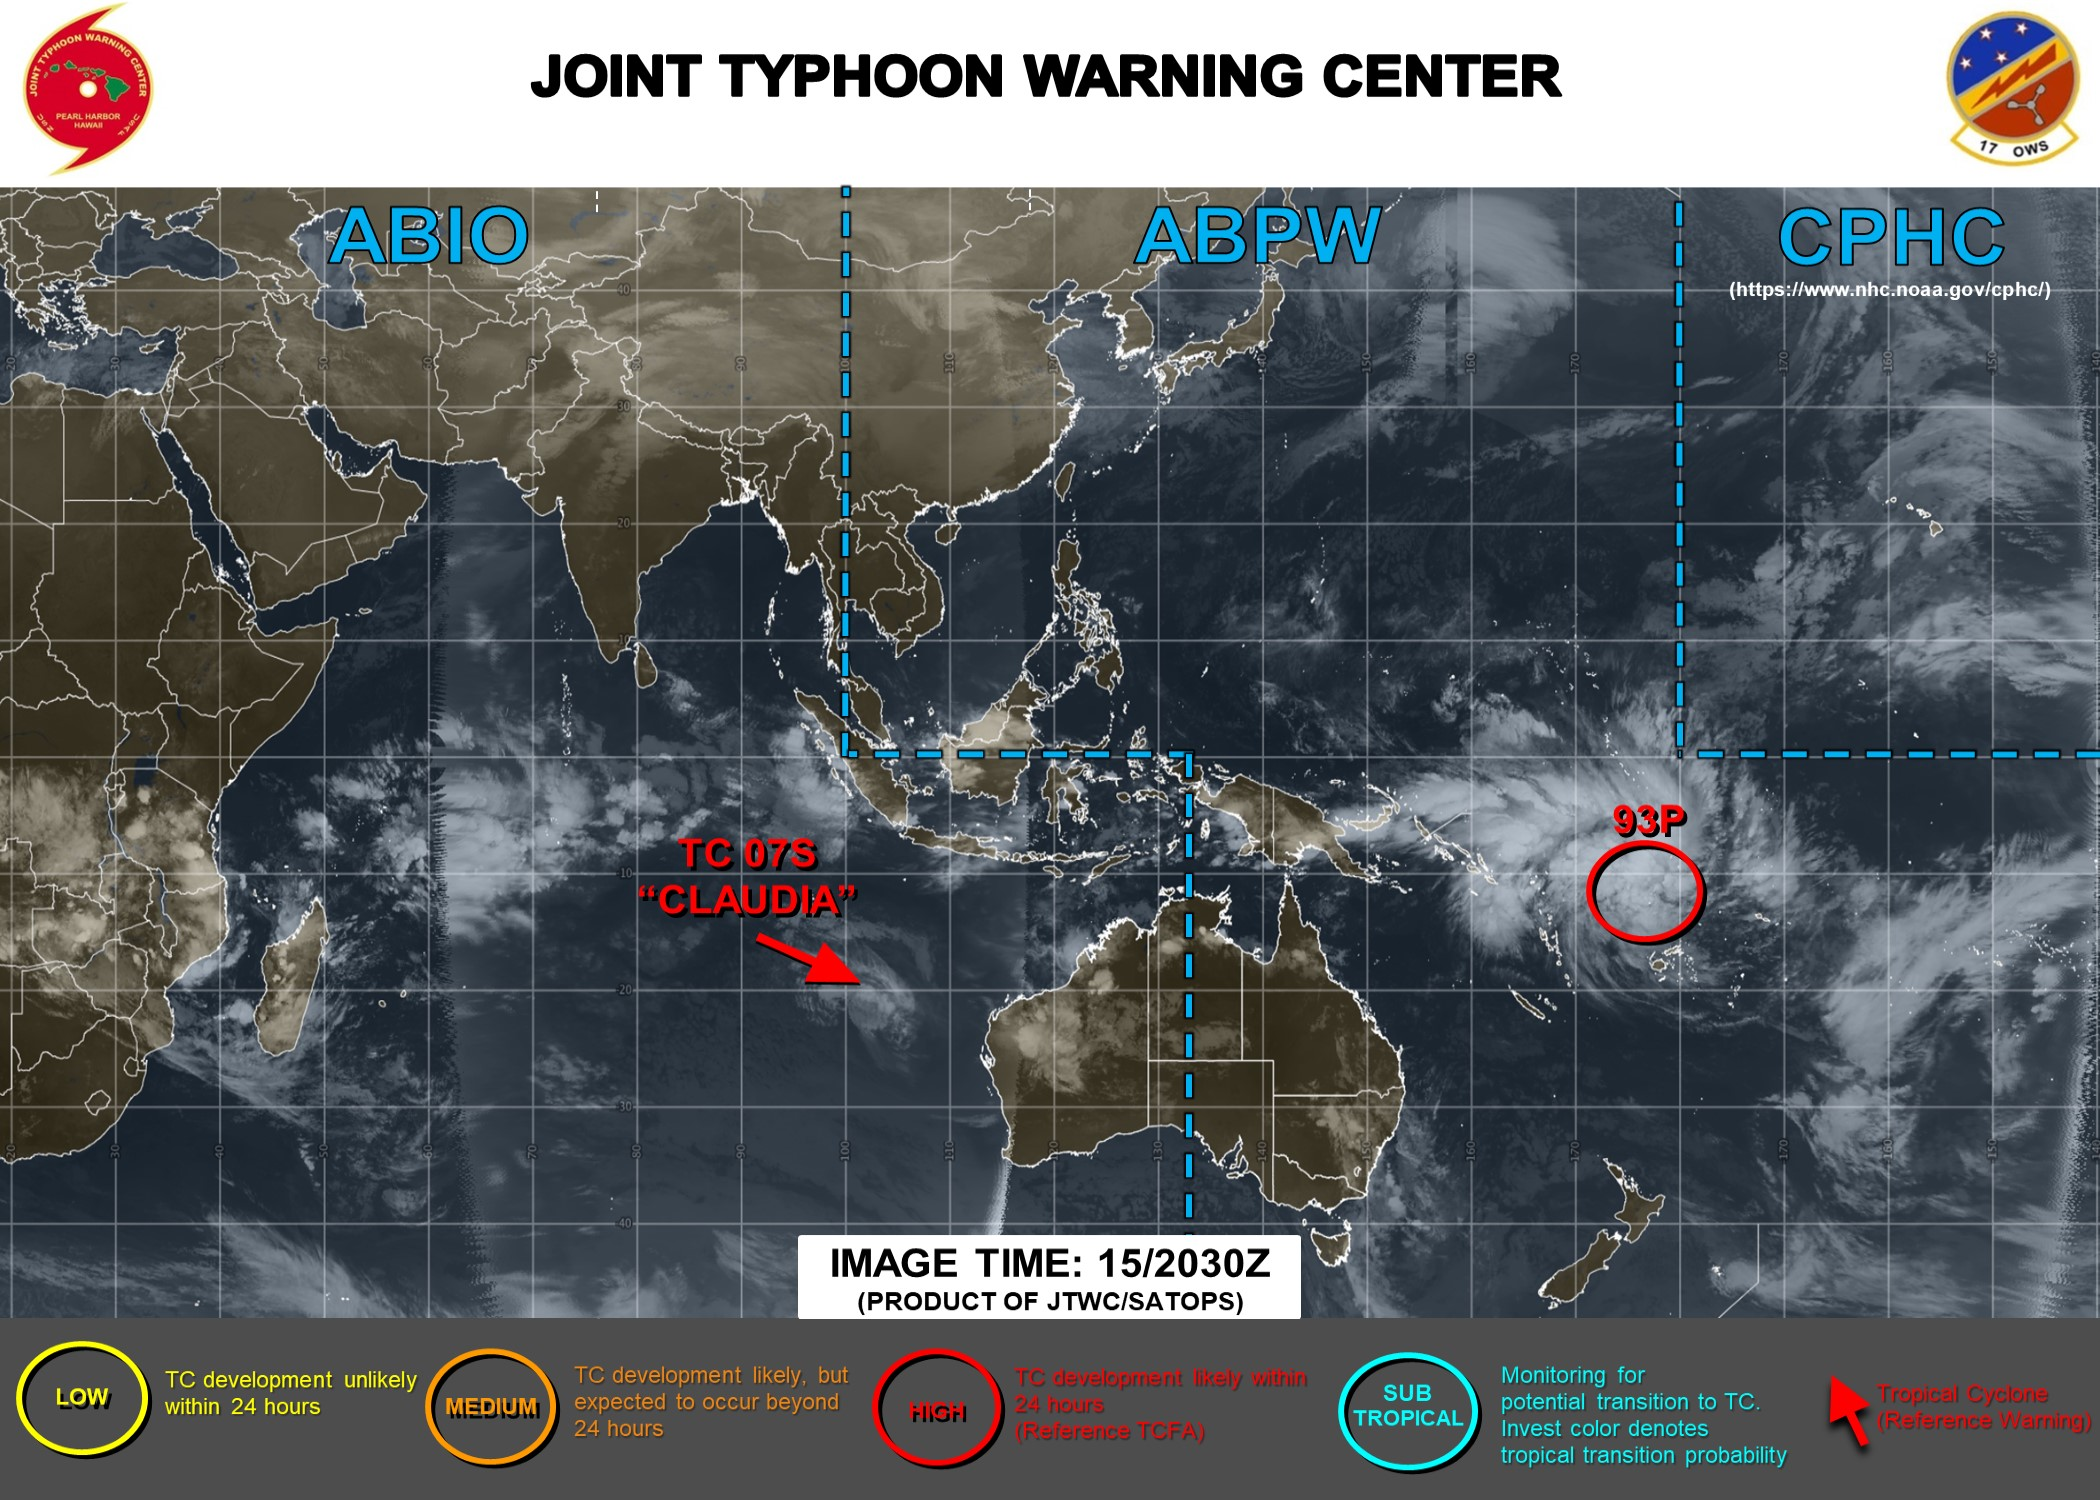 Fiji area: Invest 93P: Tropical Cyclone Formation Alert